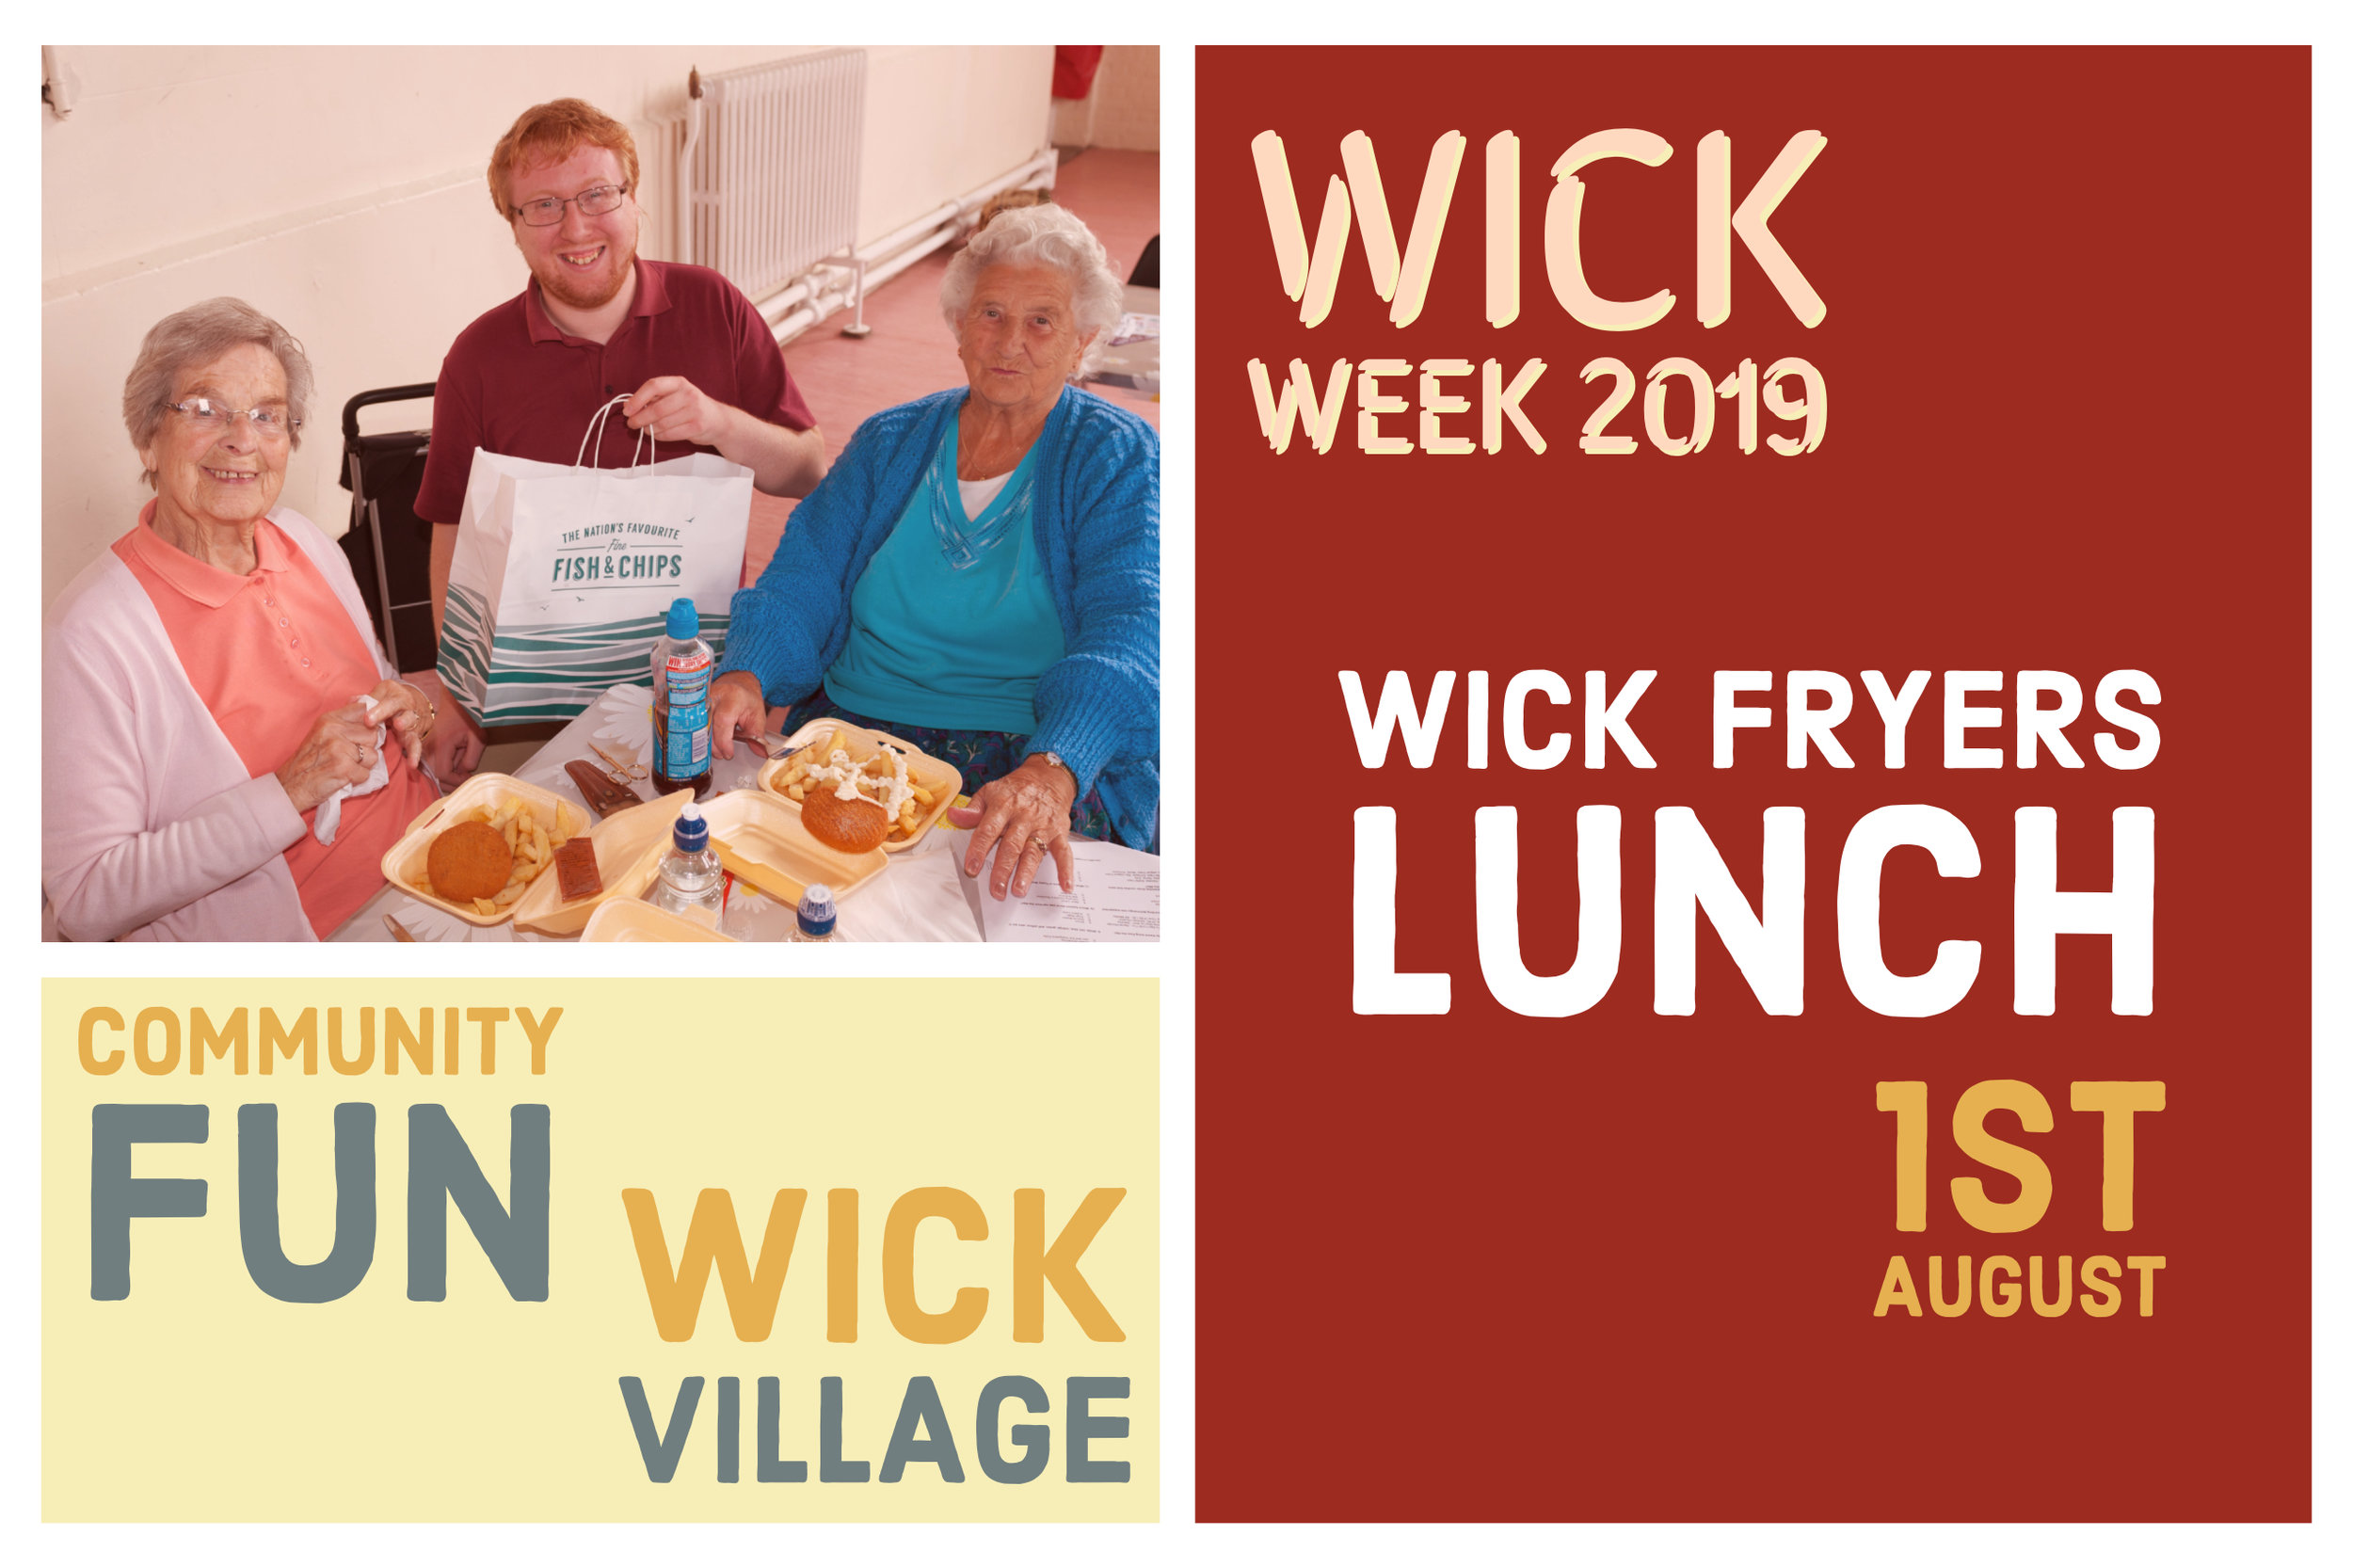 Wick Week 2019 - Wick Fryers Lunch